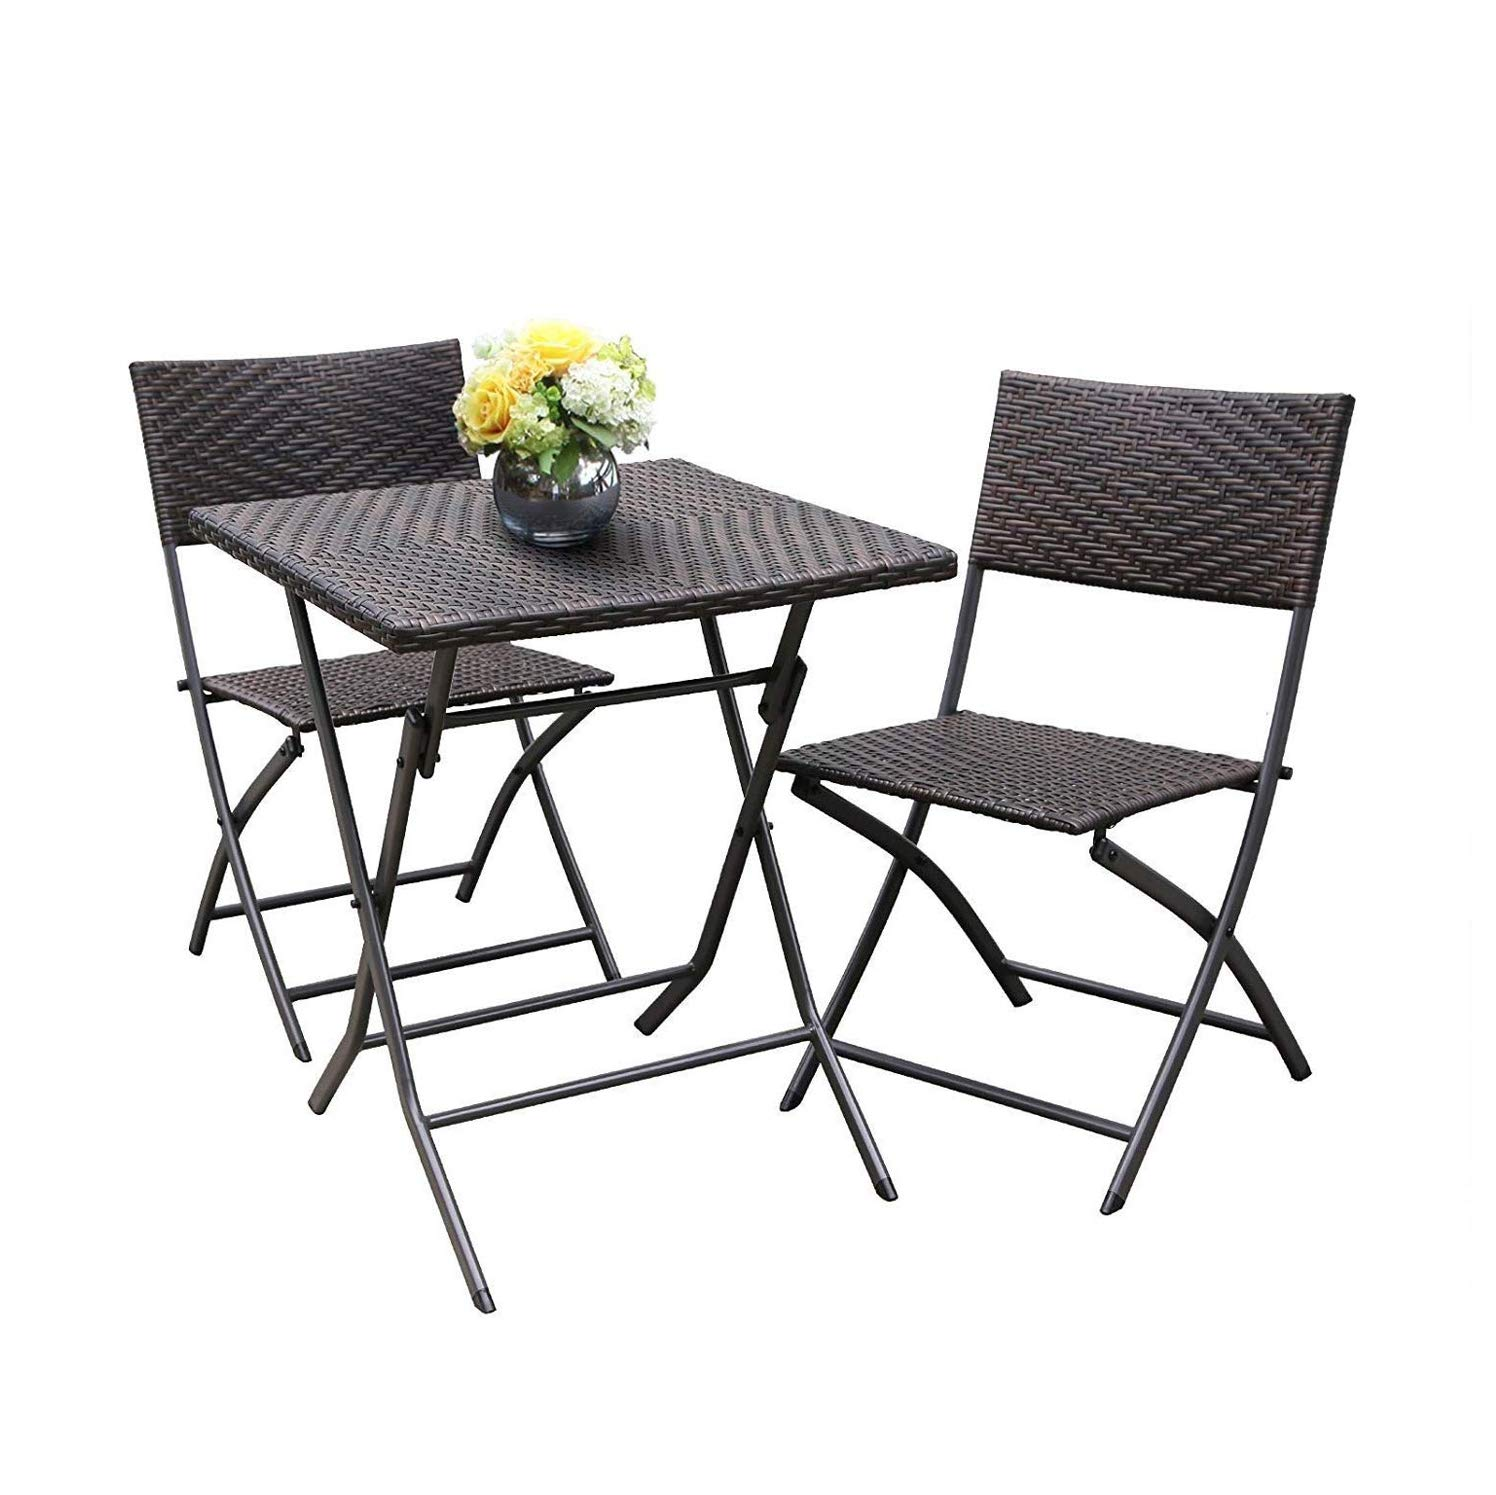 HL Patio Resin Rattan Steel Folding Bistro Set, Parma Style, All Weather Resistant Resin Wicker, 5 PCS 3PCS Set of Foldable Table and Chairs, Color Espresso Brown, 3-Year Warranty, No Assembly Needed